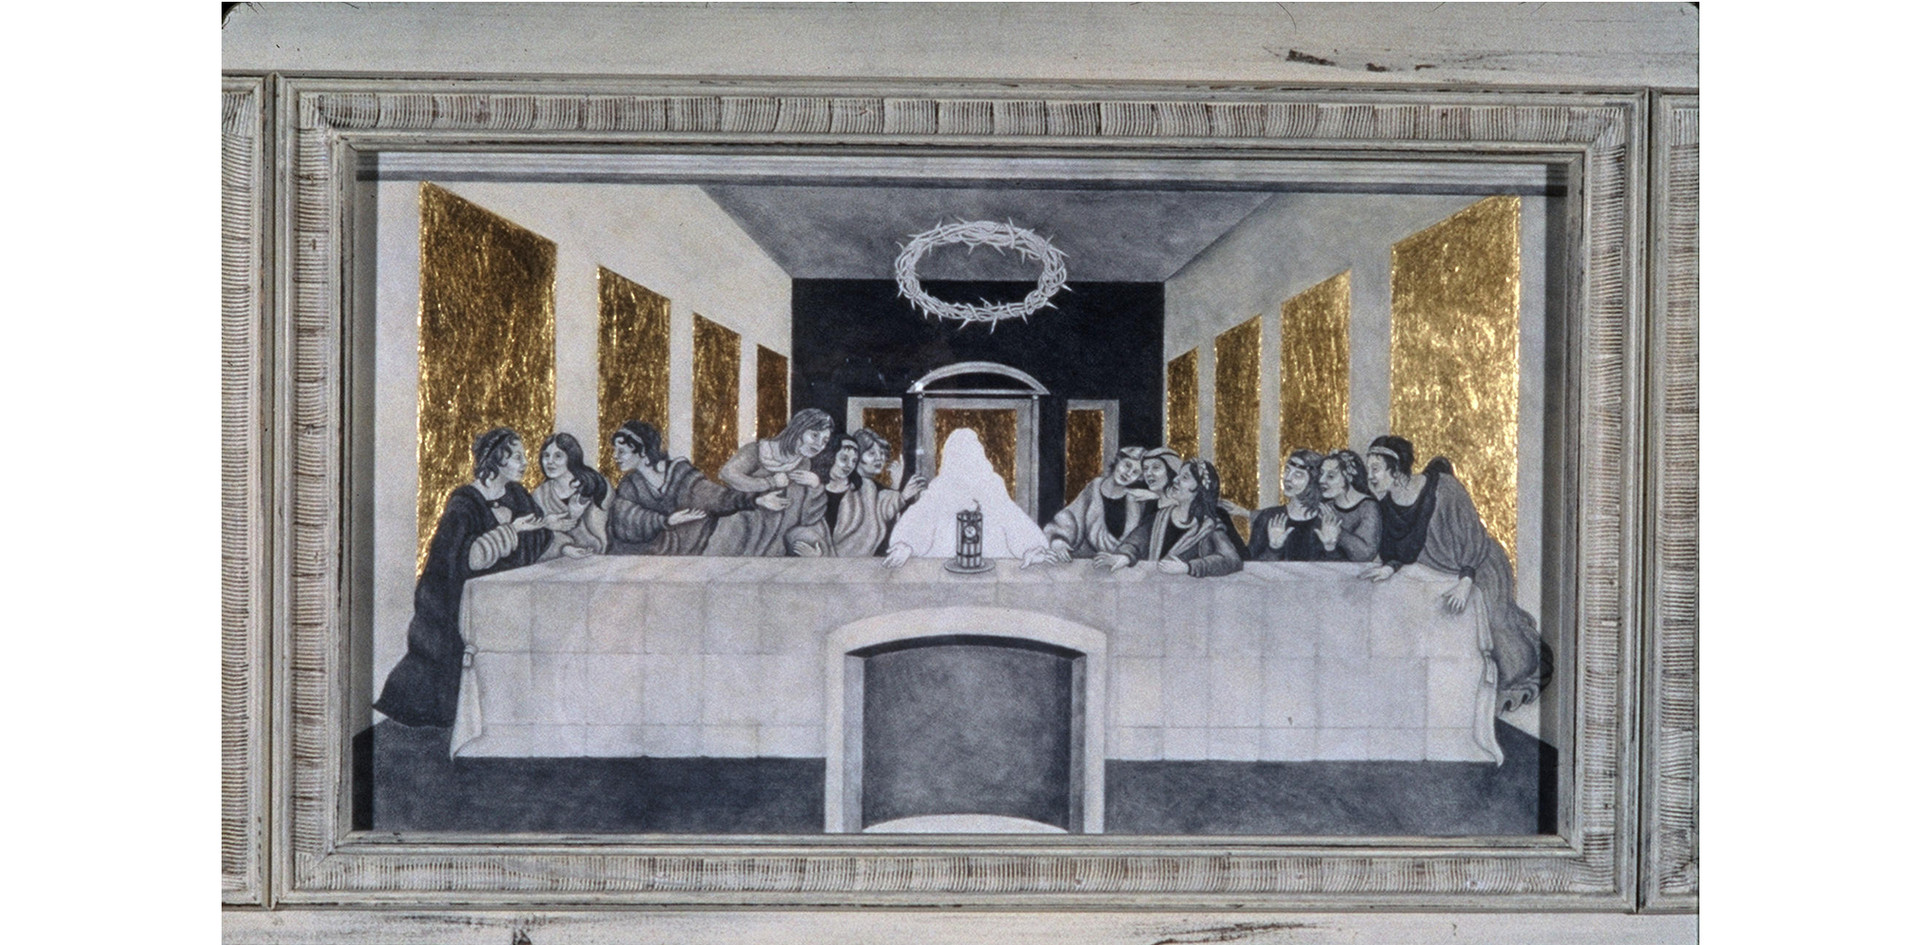 Before the Last Supper